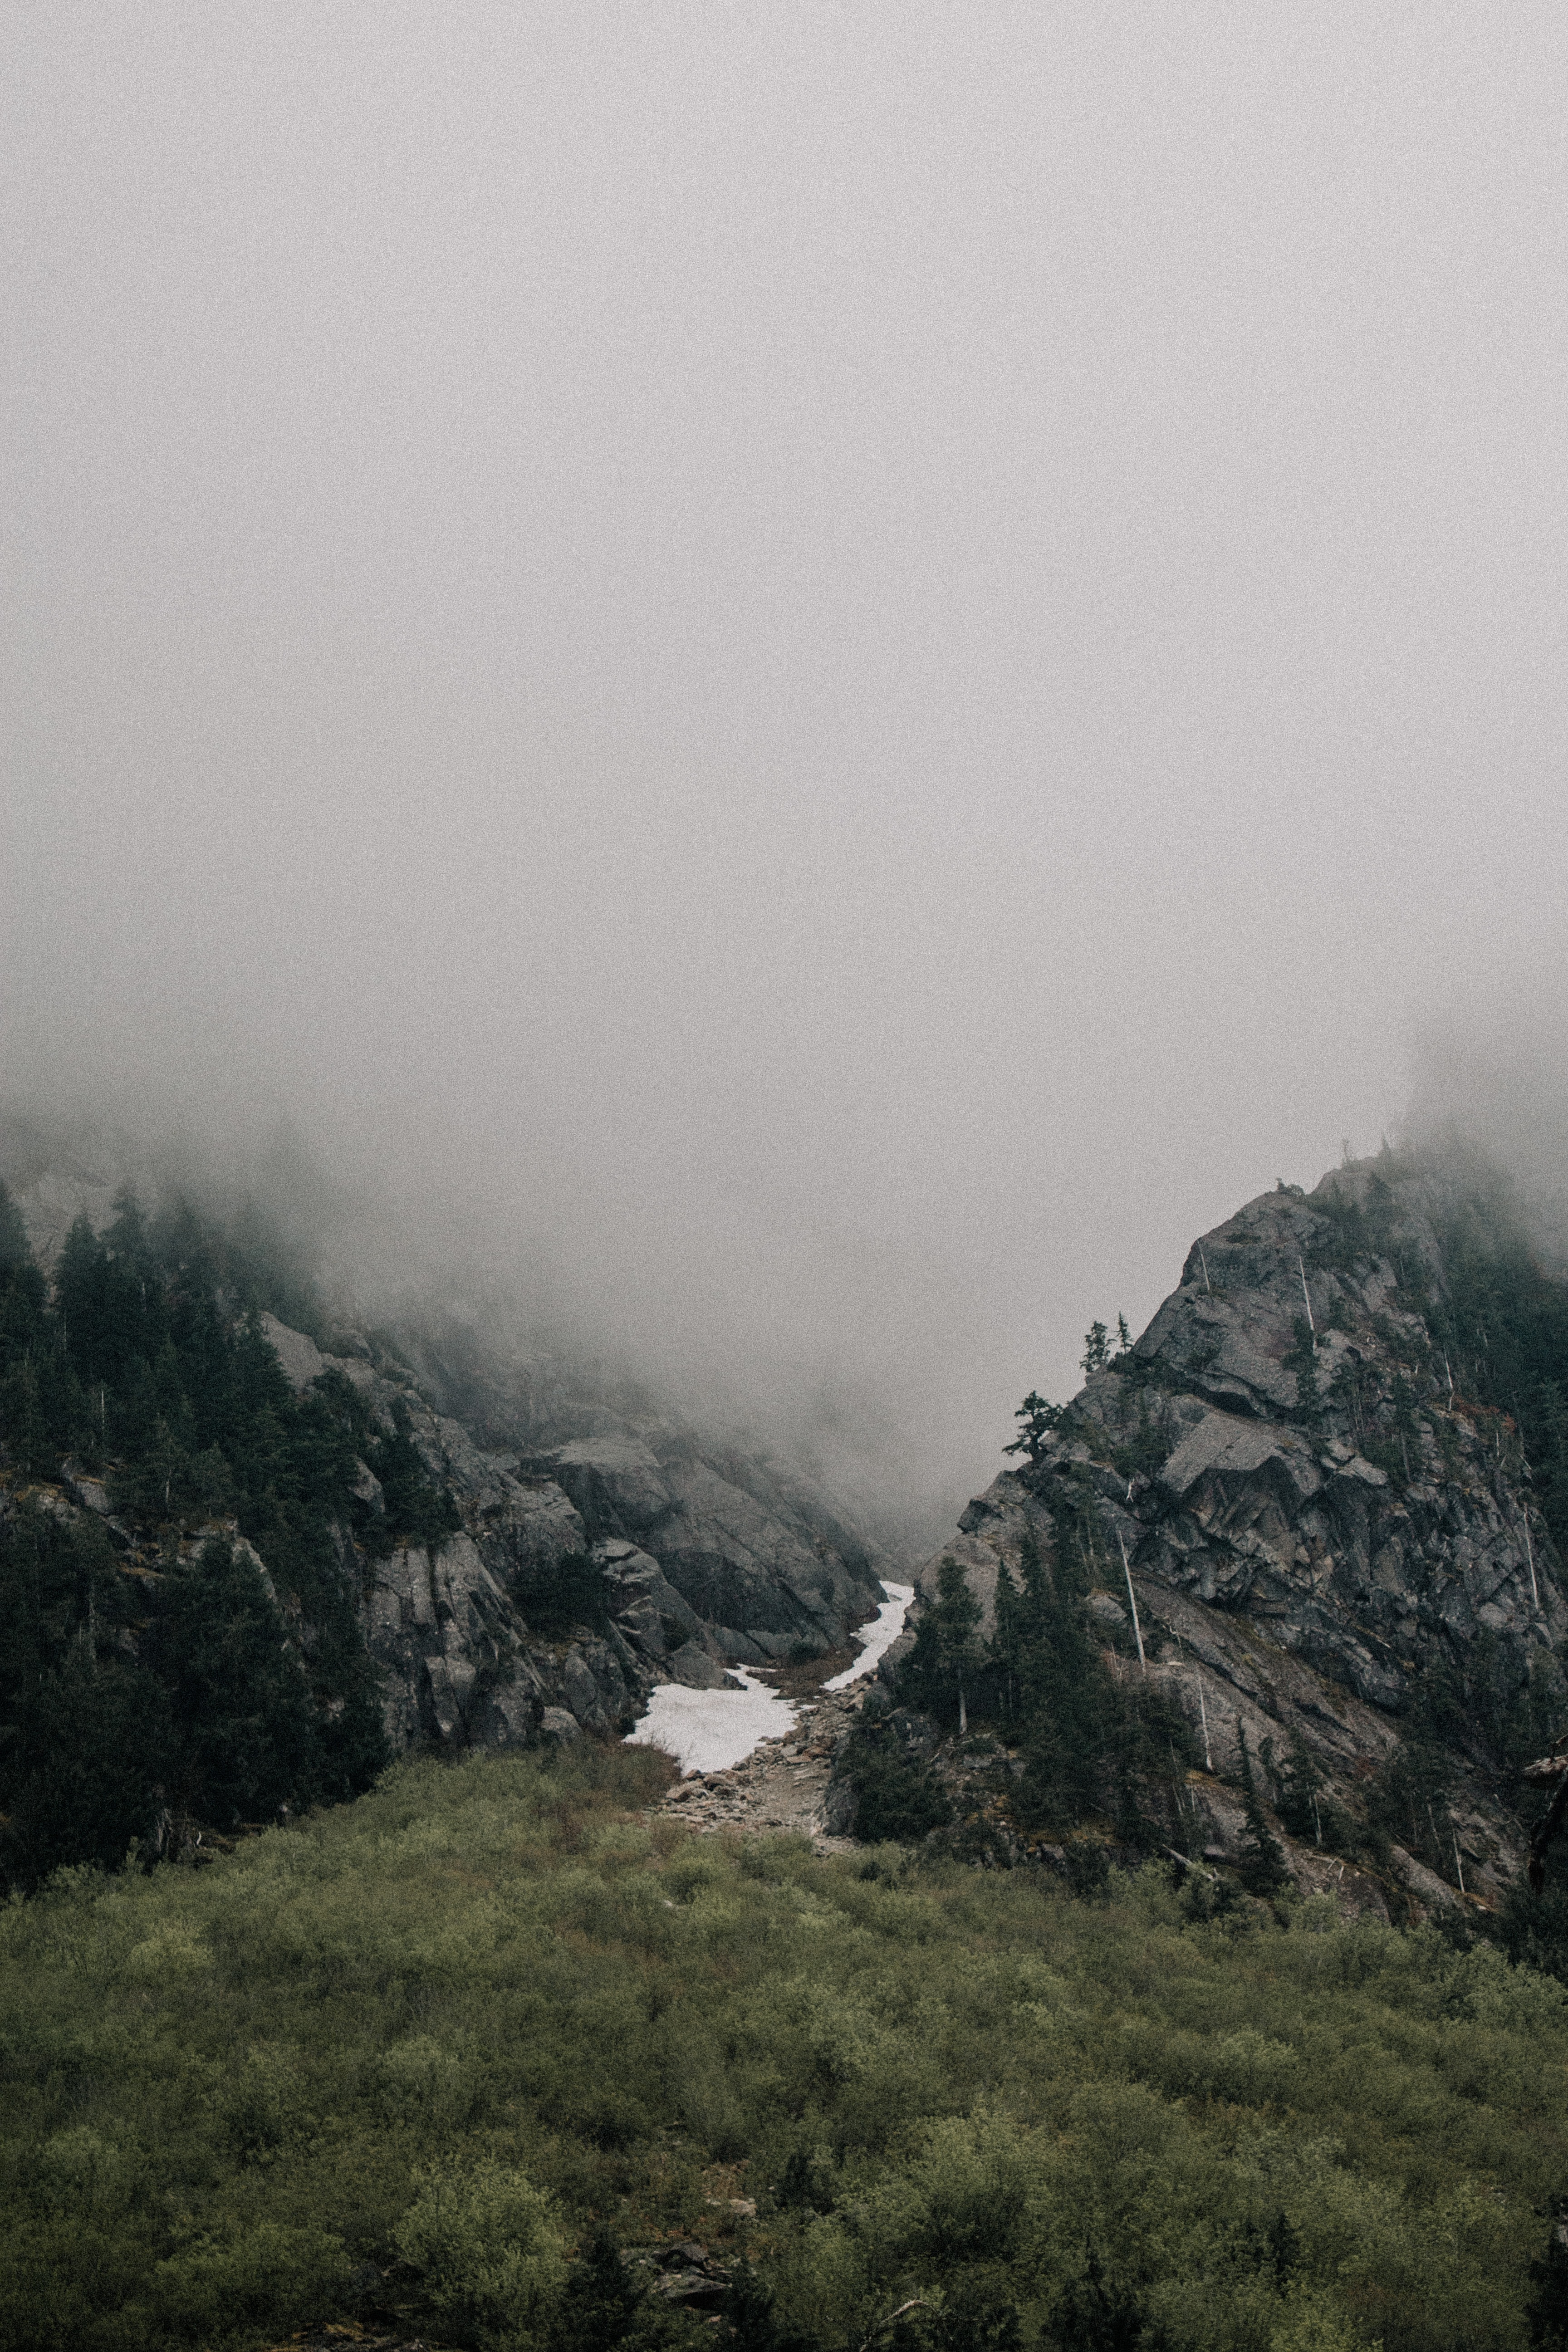 aerial photo of mountain beside trees and mist